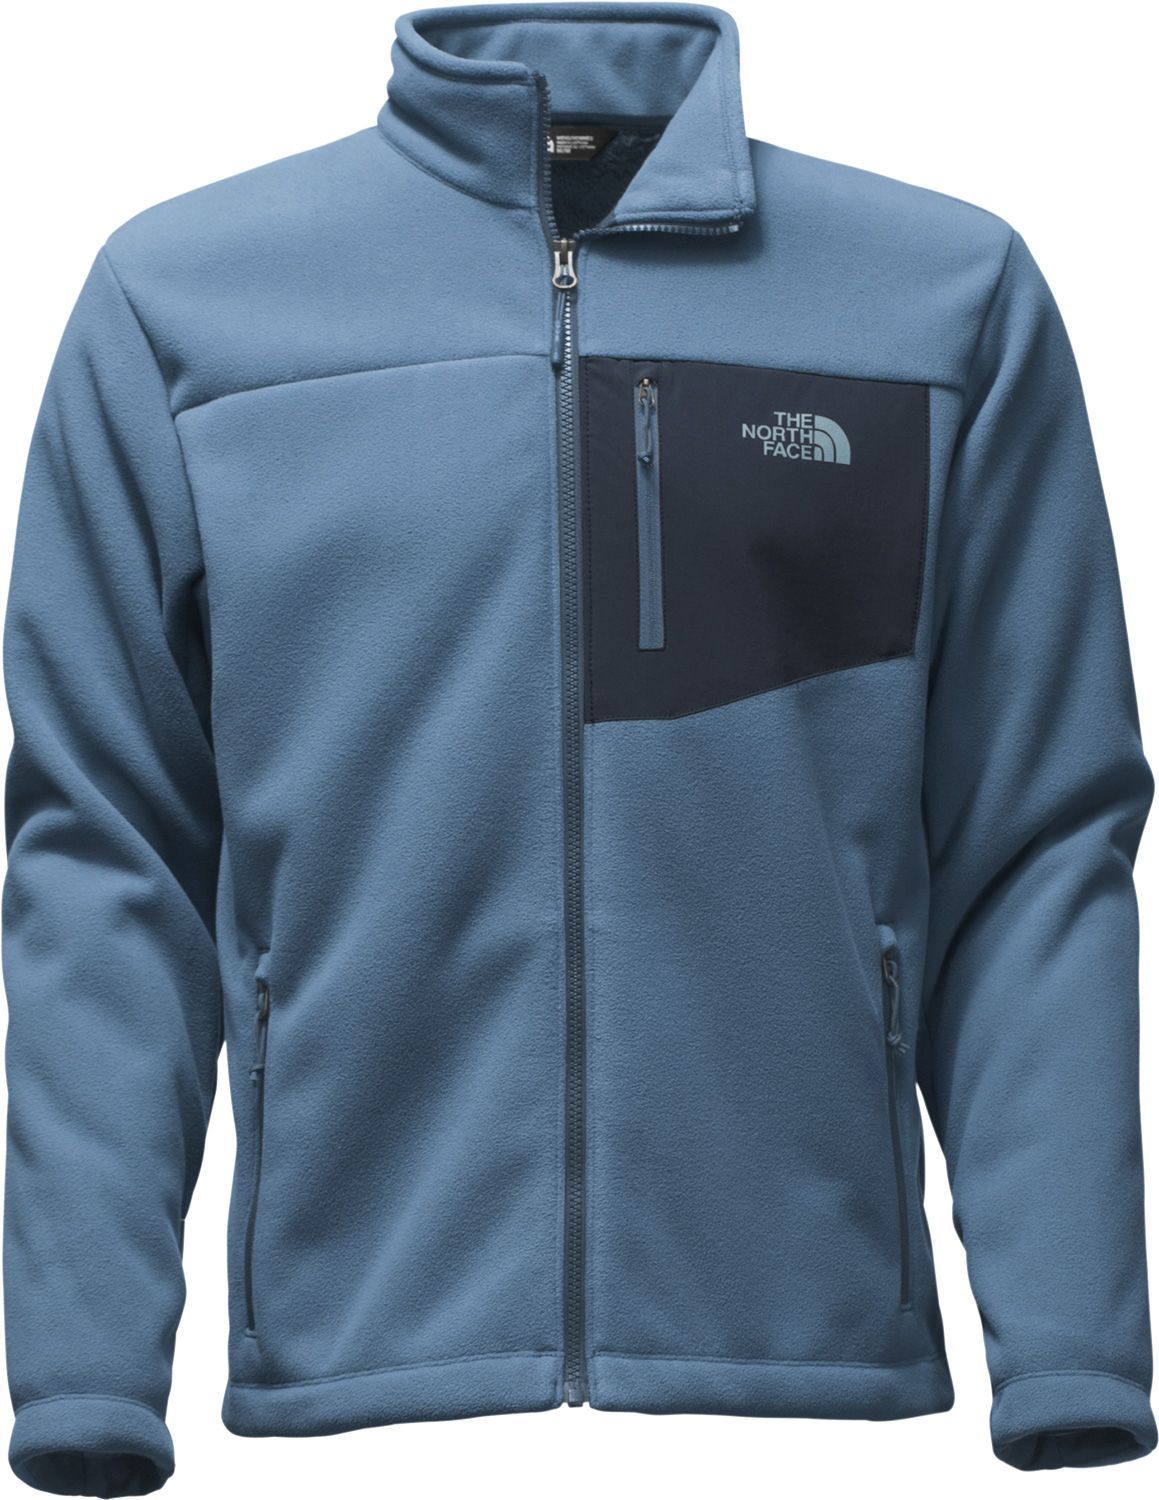 The North Face Men's Chimborazo Full Zip Fleece Jacket| DICK'S ...